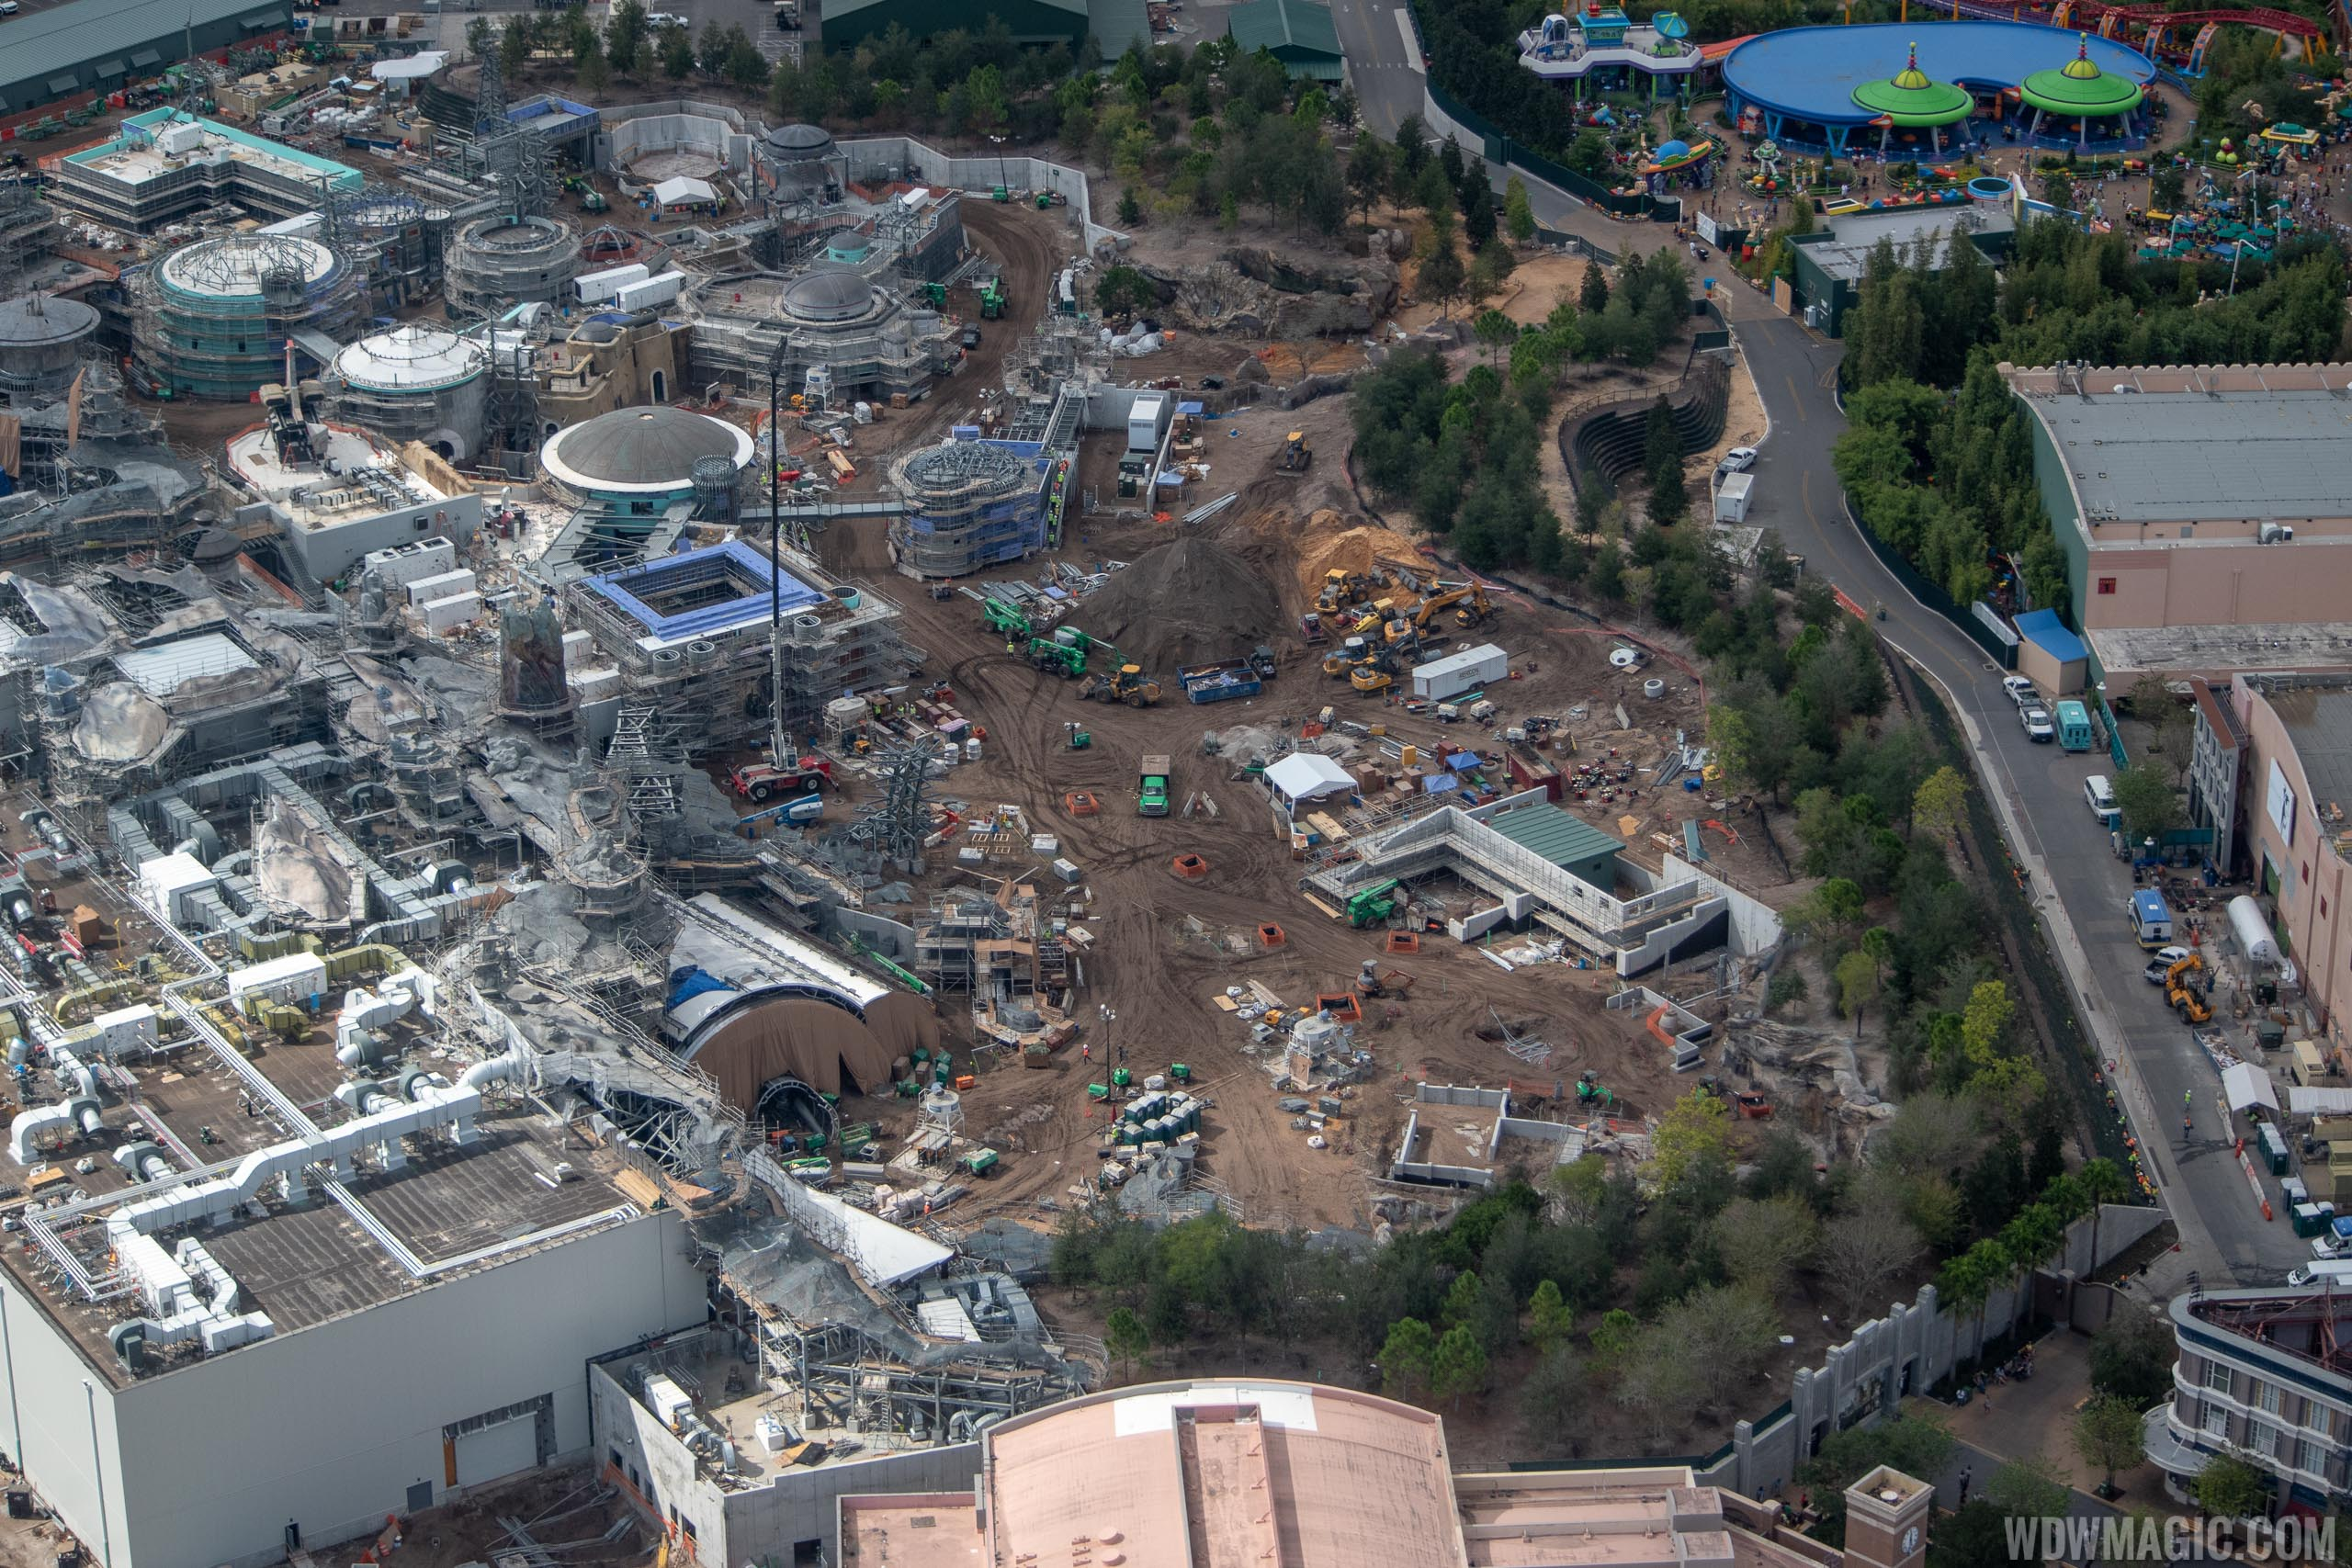 Youll Find Forevertron Behind Sea Of_27 >> Star Wars Galaxy S Edge Aerial Pictures November 2018 Photo 25 Of 27